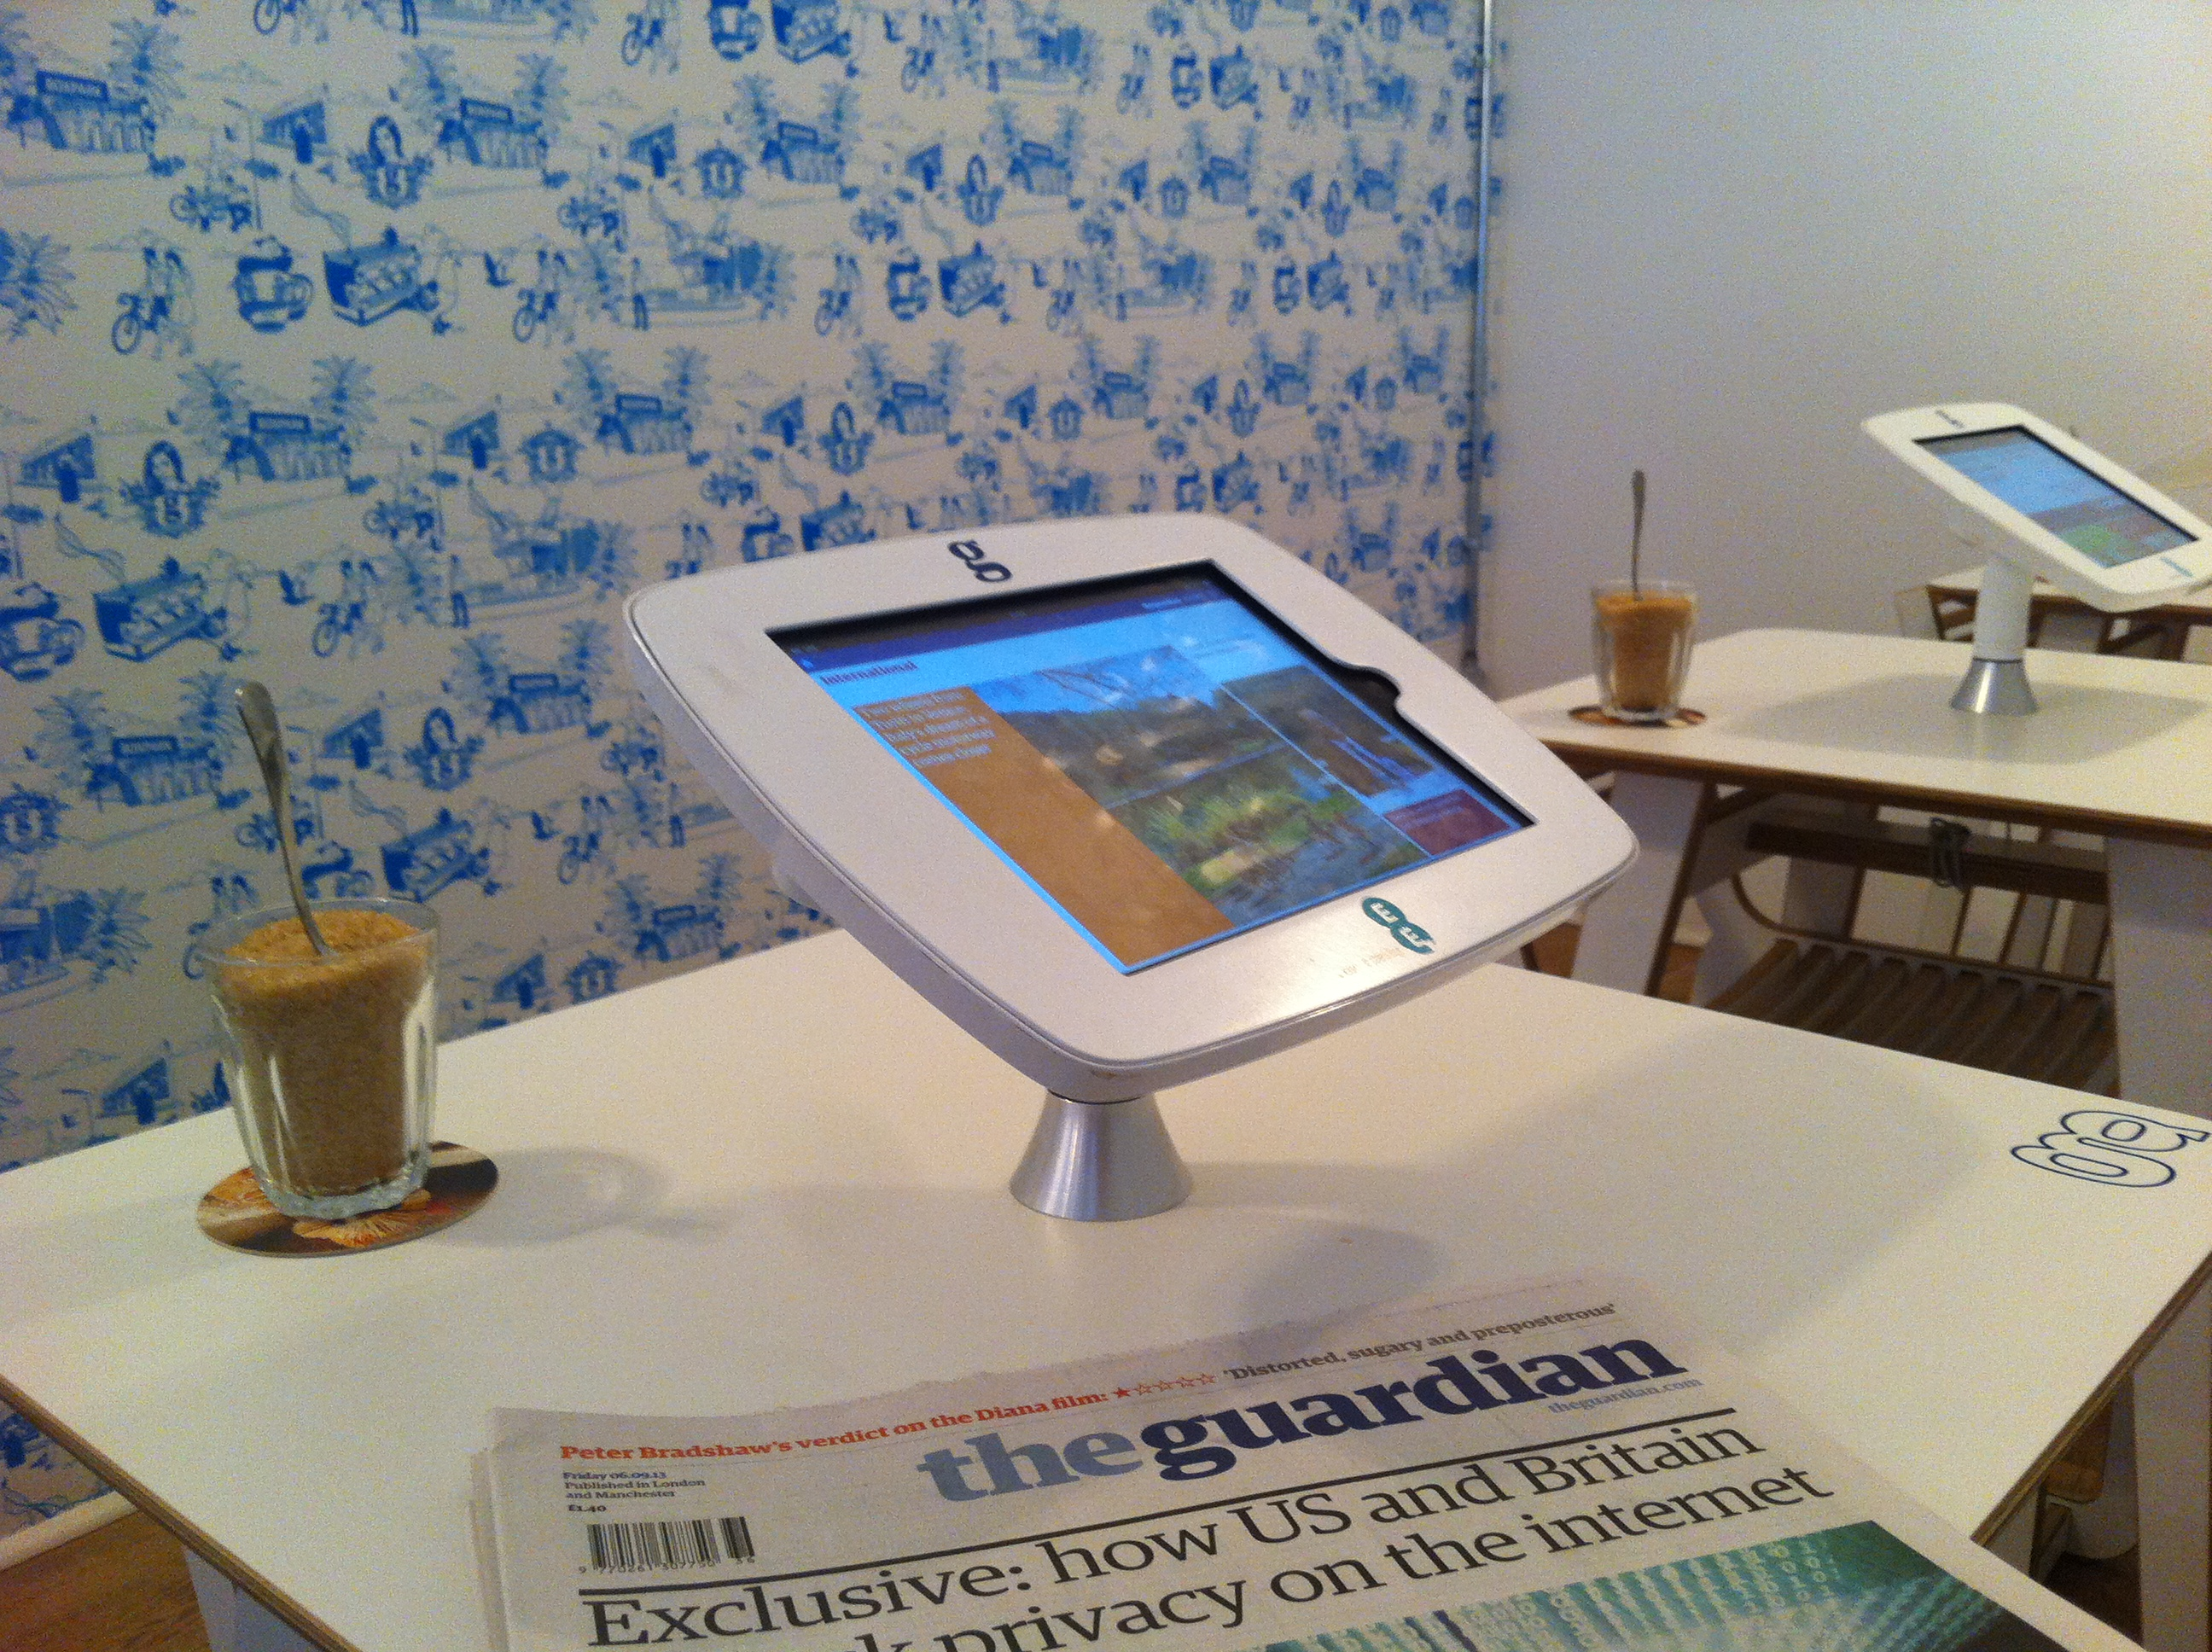 Fest montierte iPads und Guardian-Tapete bei #guardiancoffee in London.